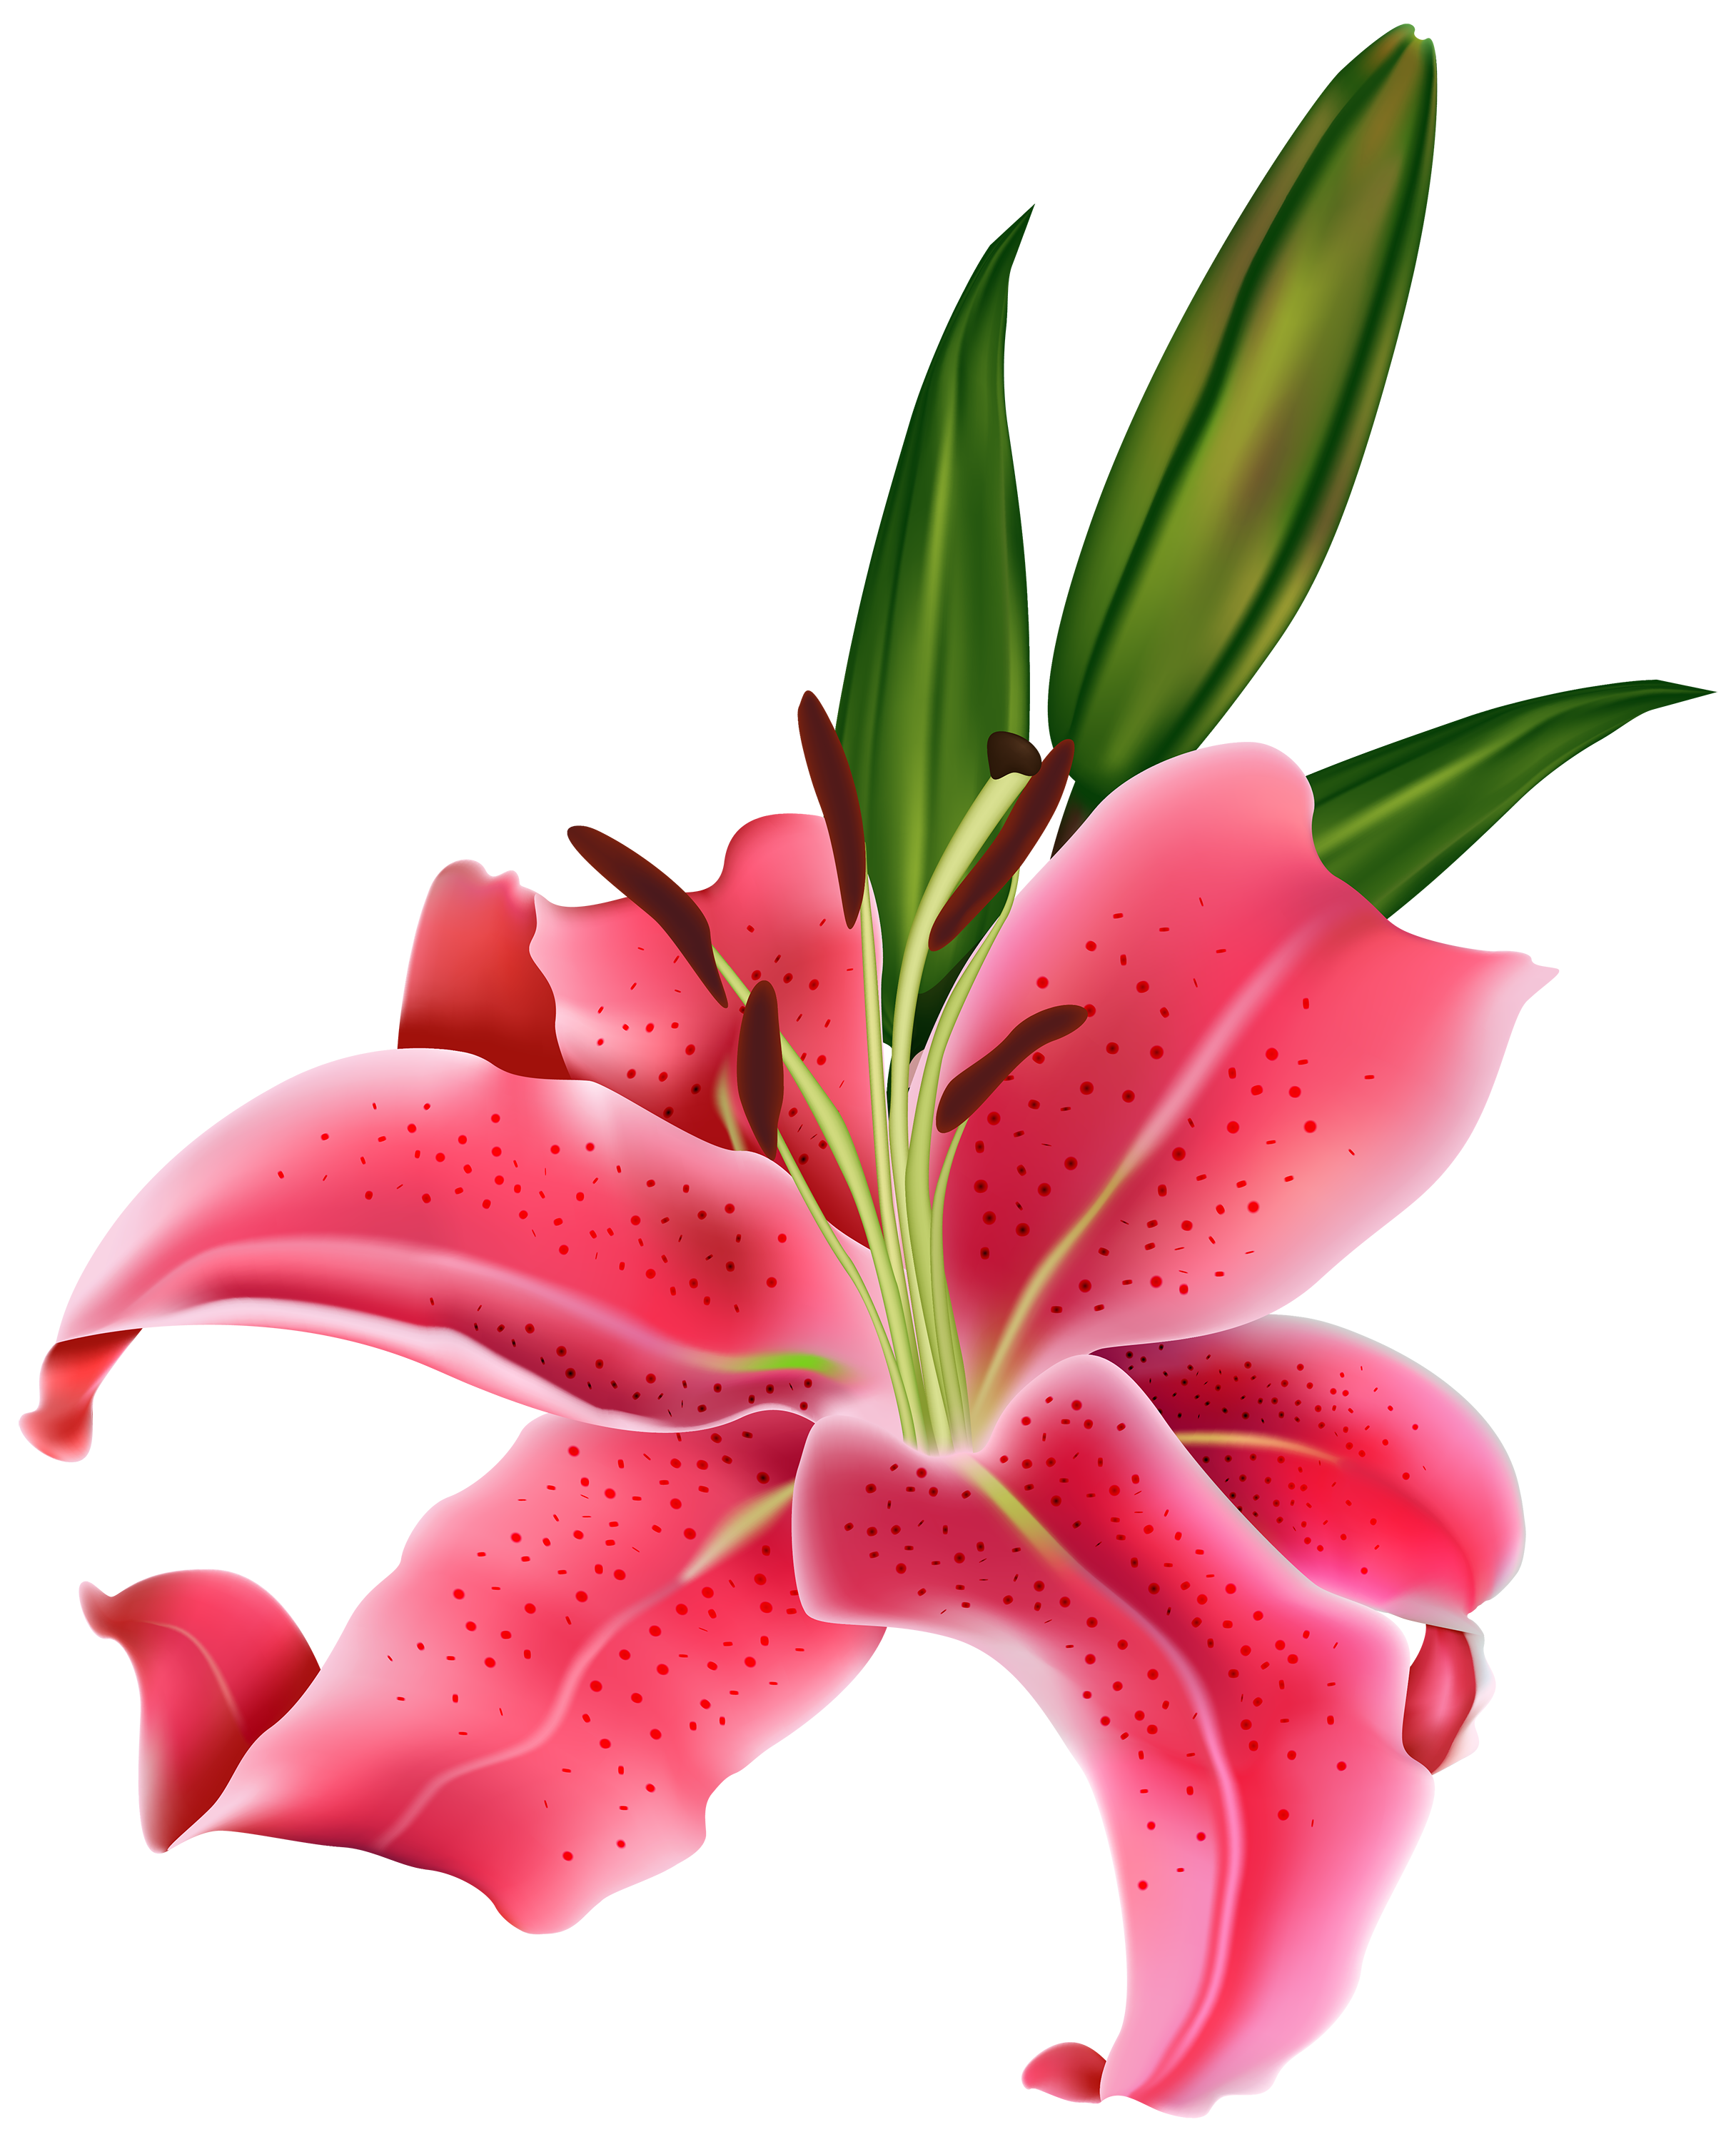 Lily transparent pink. Flower png clipart best